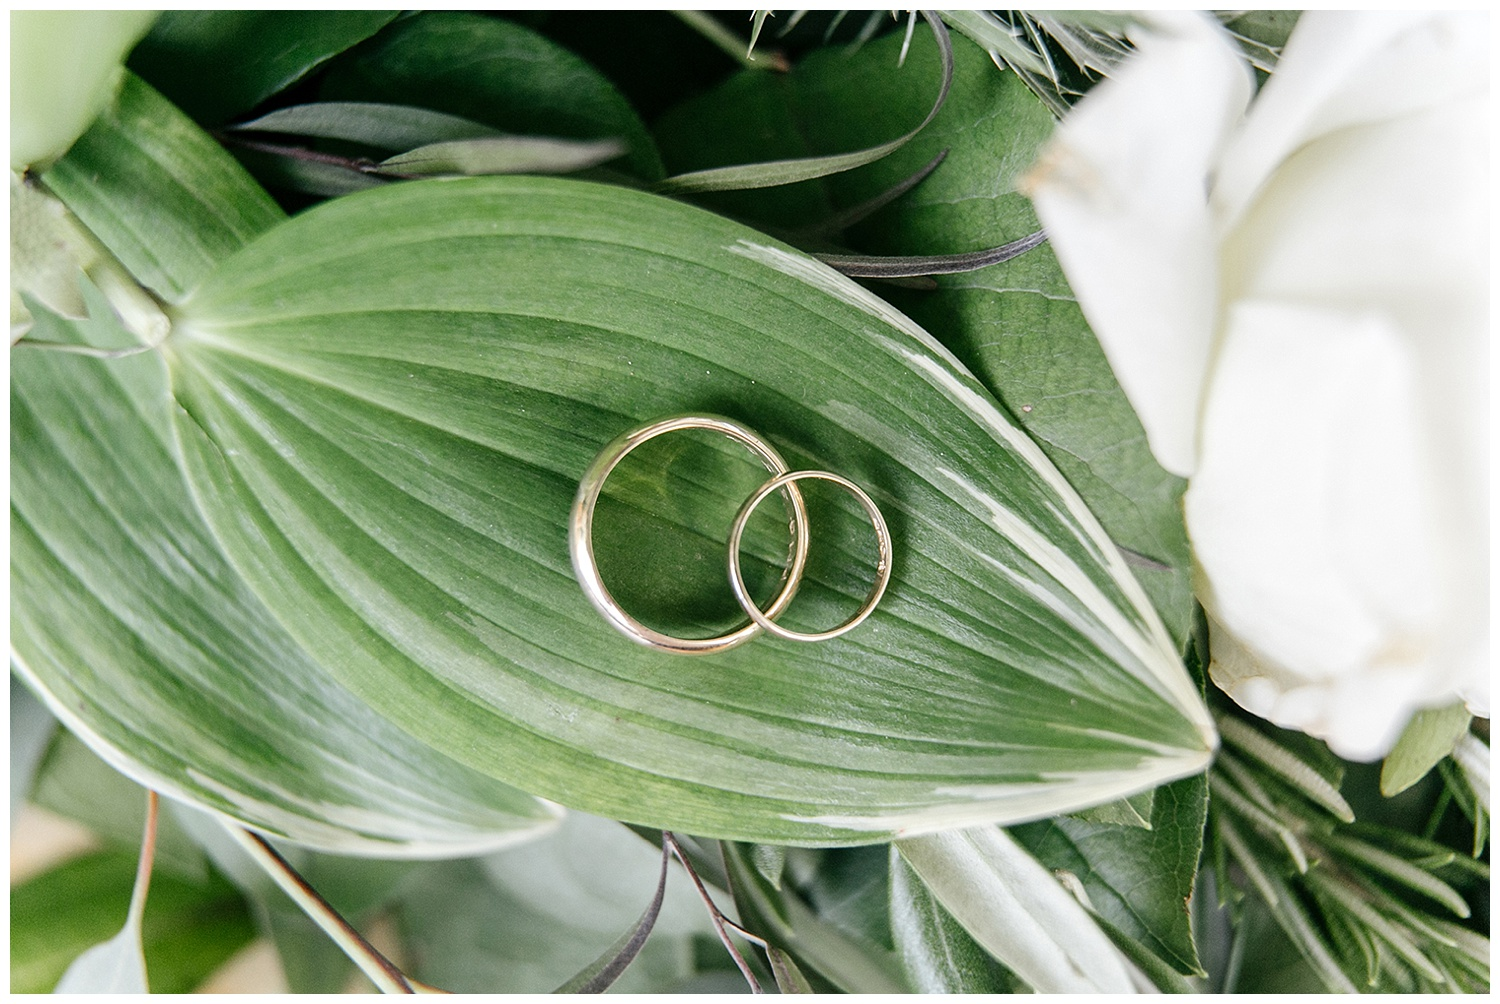 Red Oak Weddings | New York, New Jersey and Pennsylvania wedding vendors, resources and inspiration for the modern couple |